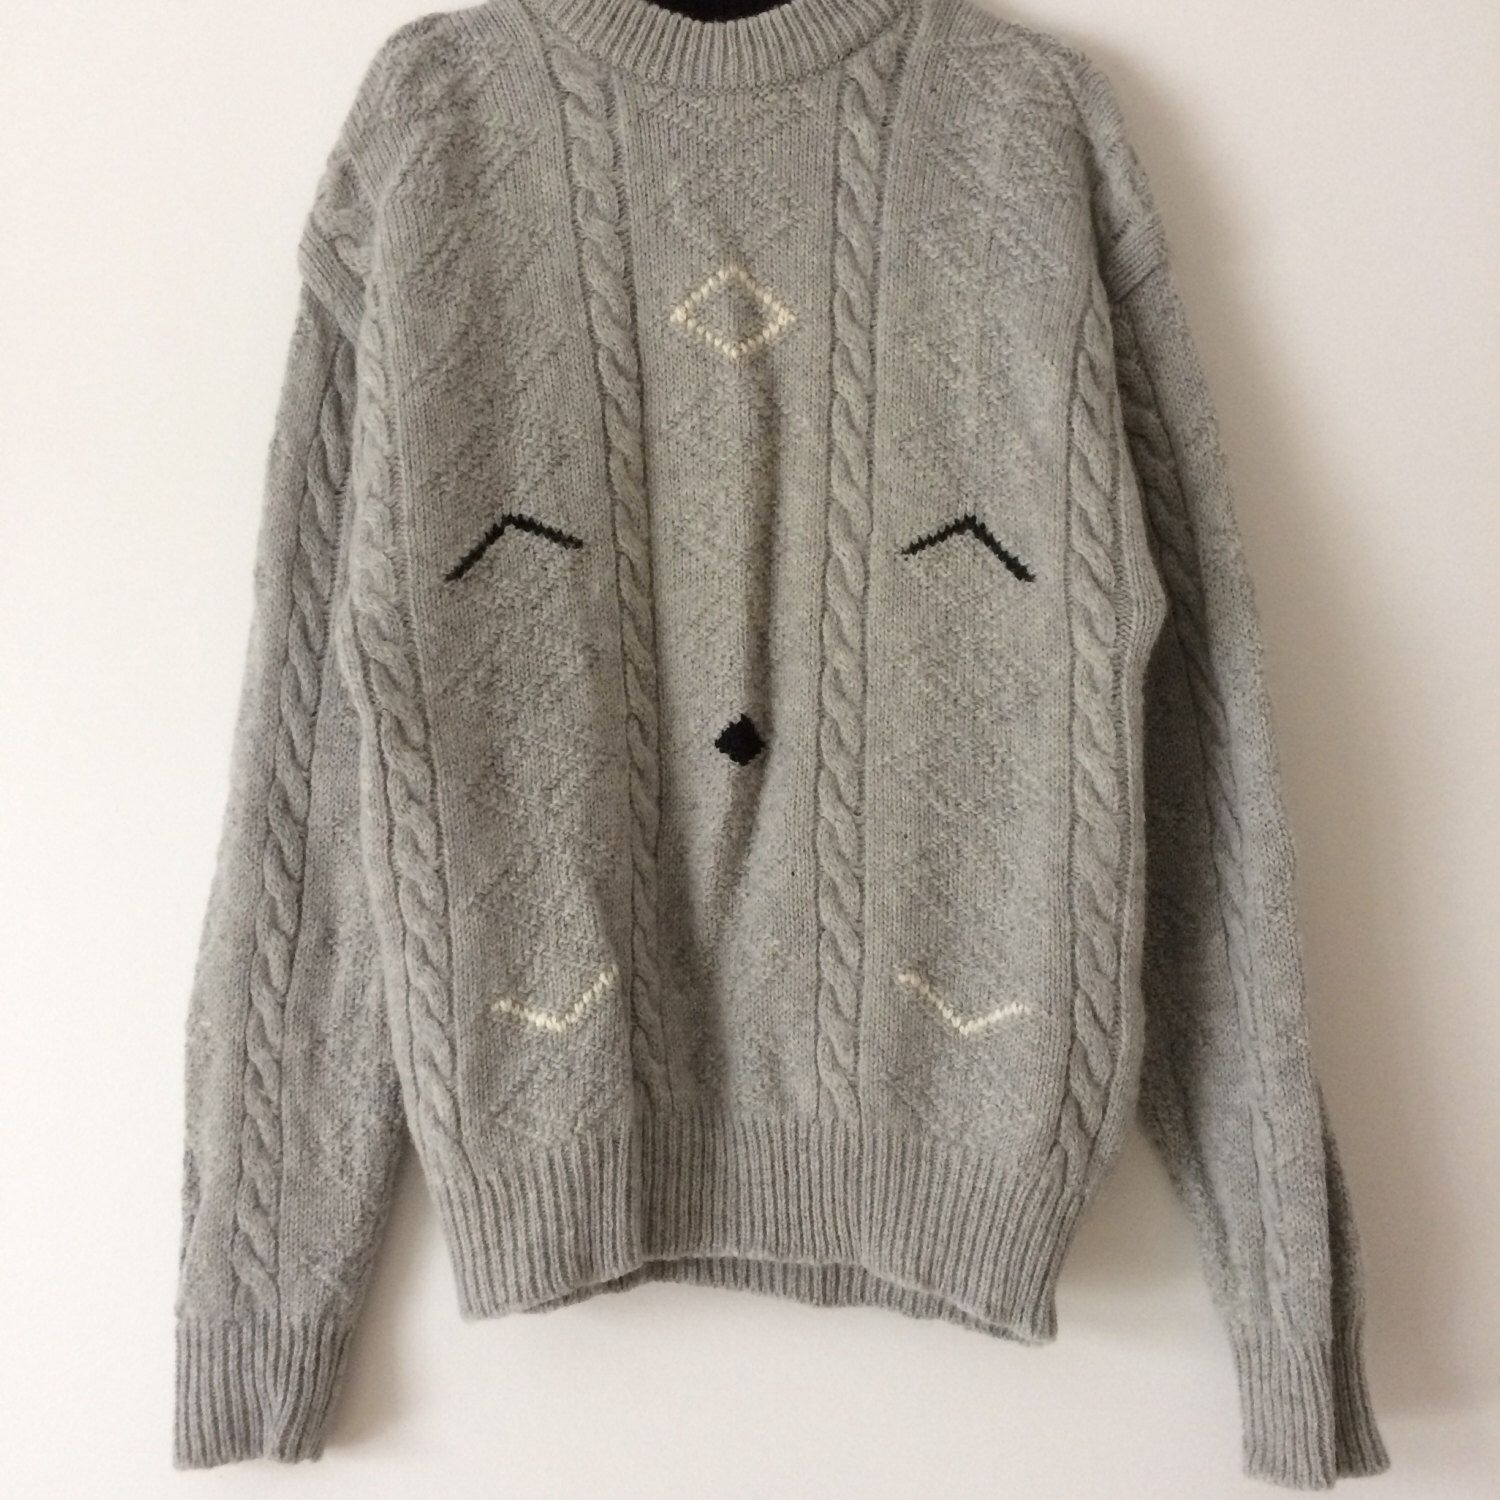 oversized knit sweater, super cute outfit with jeans! 100% wool ...